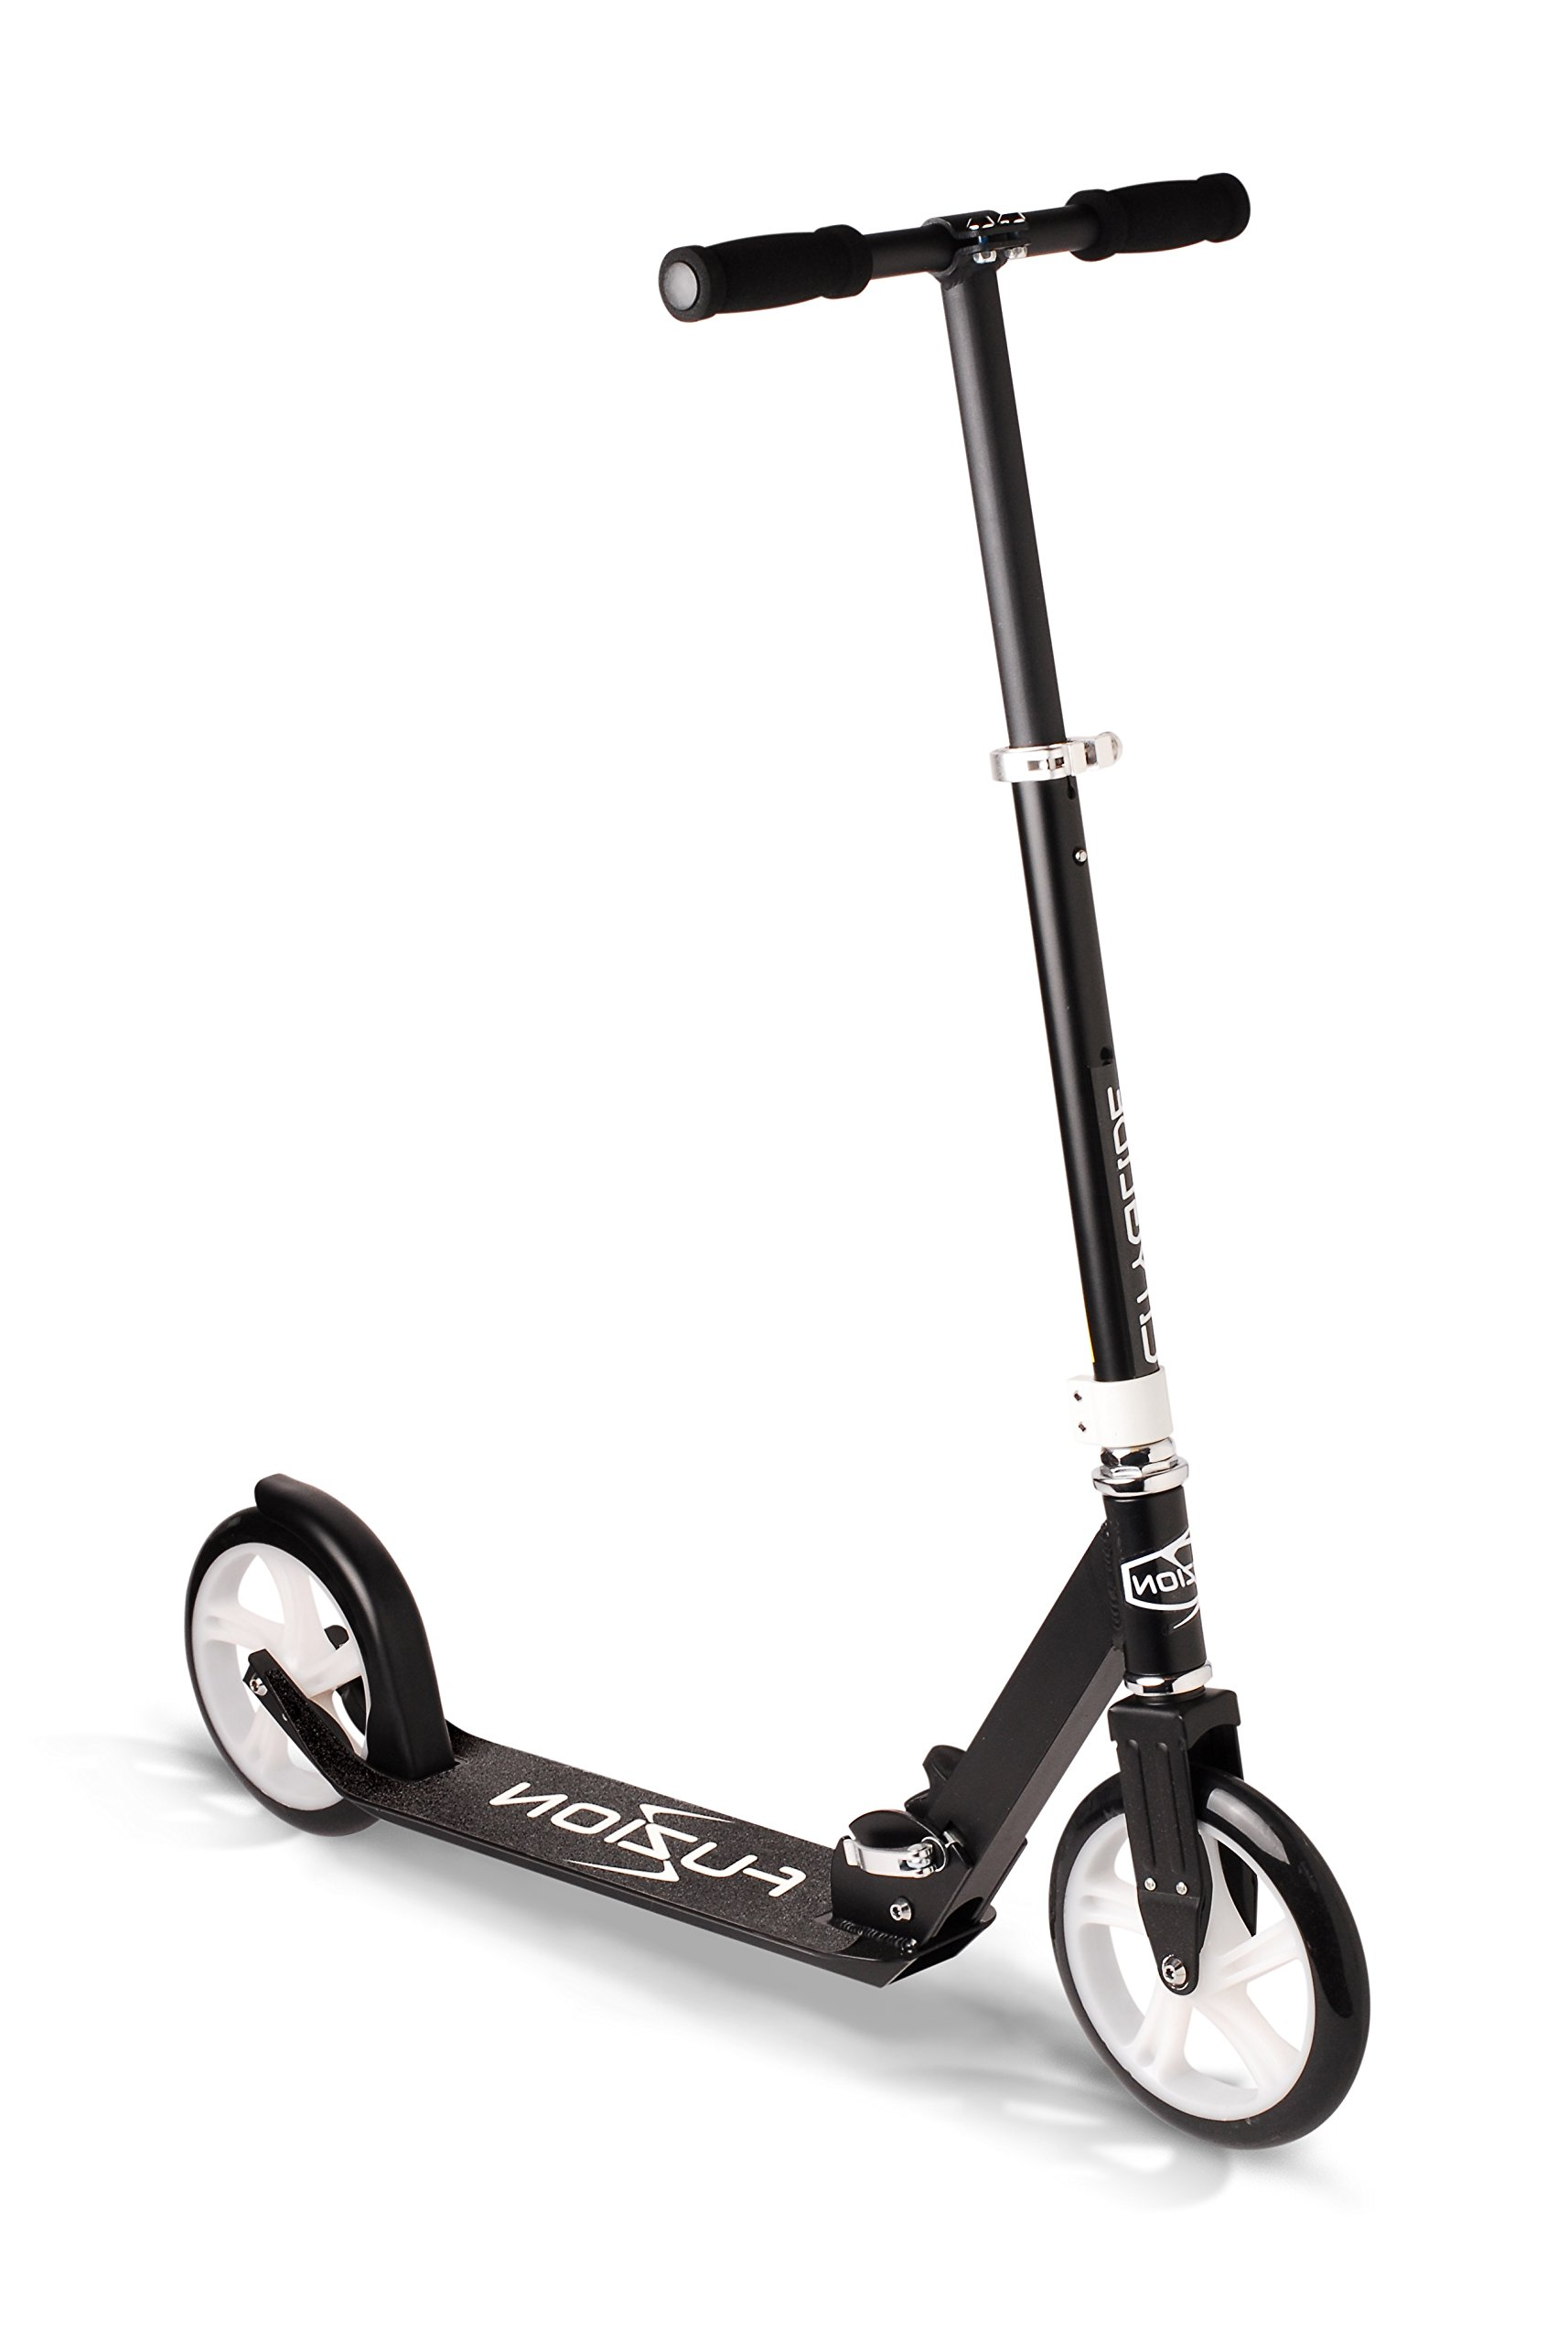 Fuzion Cityglide Adult Kick Scooter - Smooth, Pro Push Urban Scooters for Adults, Commuter Scooters, City Scooters - Folding Scooter and Adjustable T-Bar - Big Kids, Boys and Girls (Max 220lbs) by Fuzion